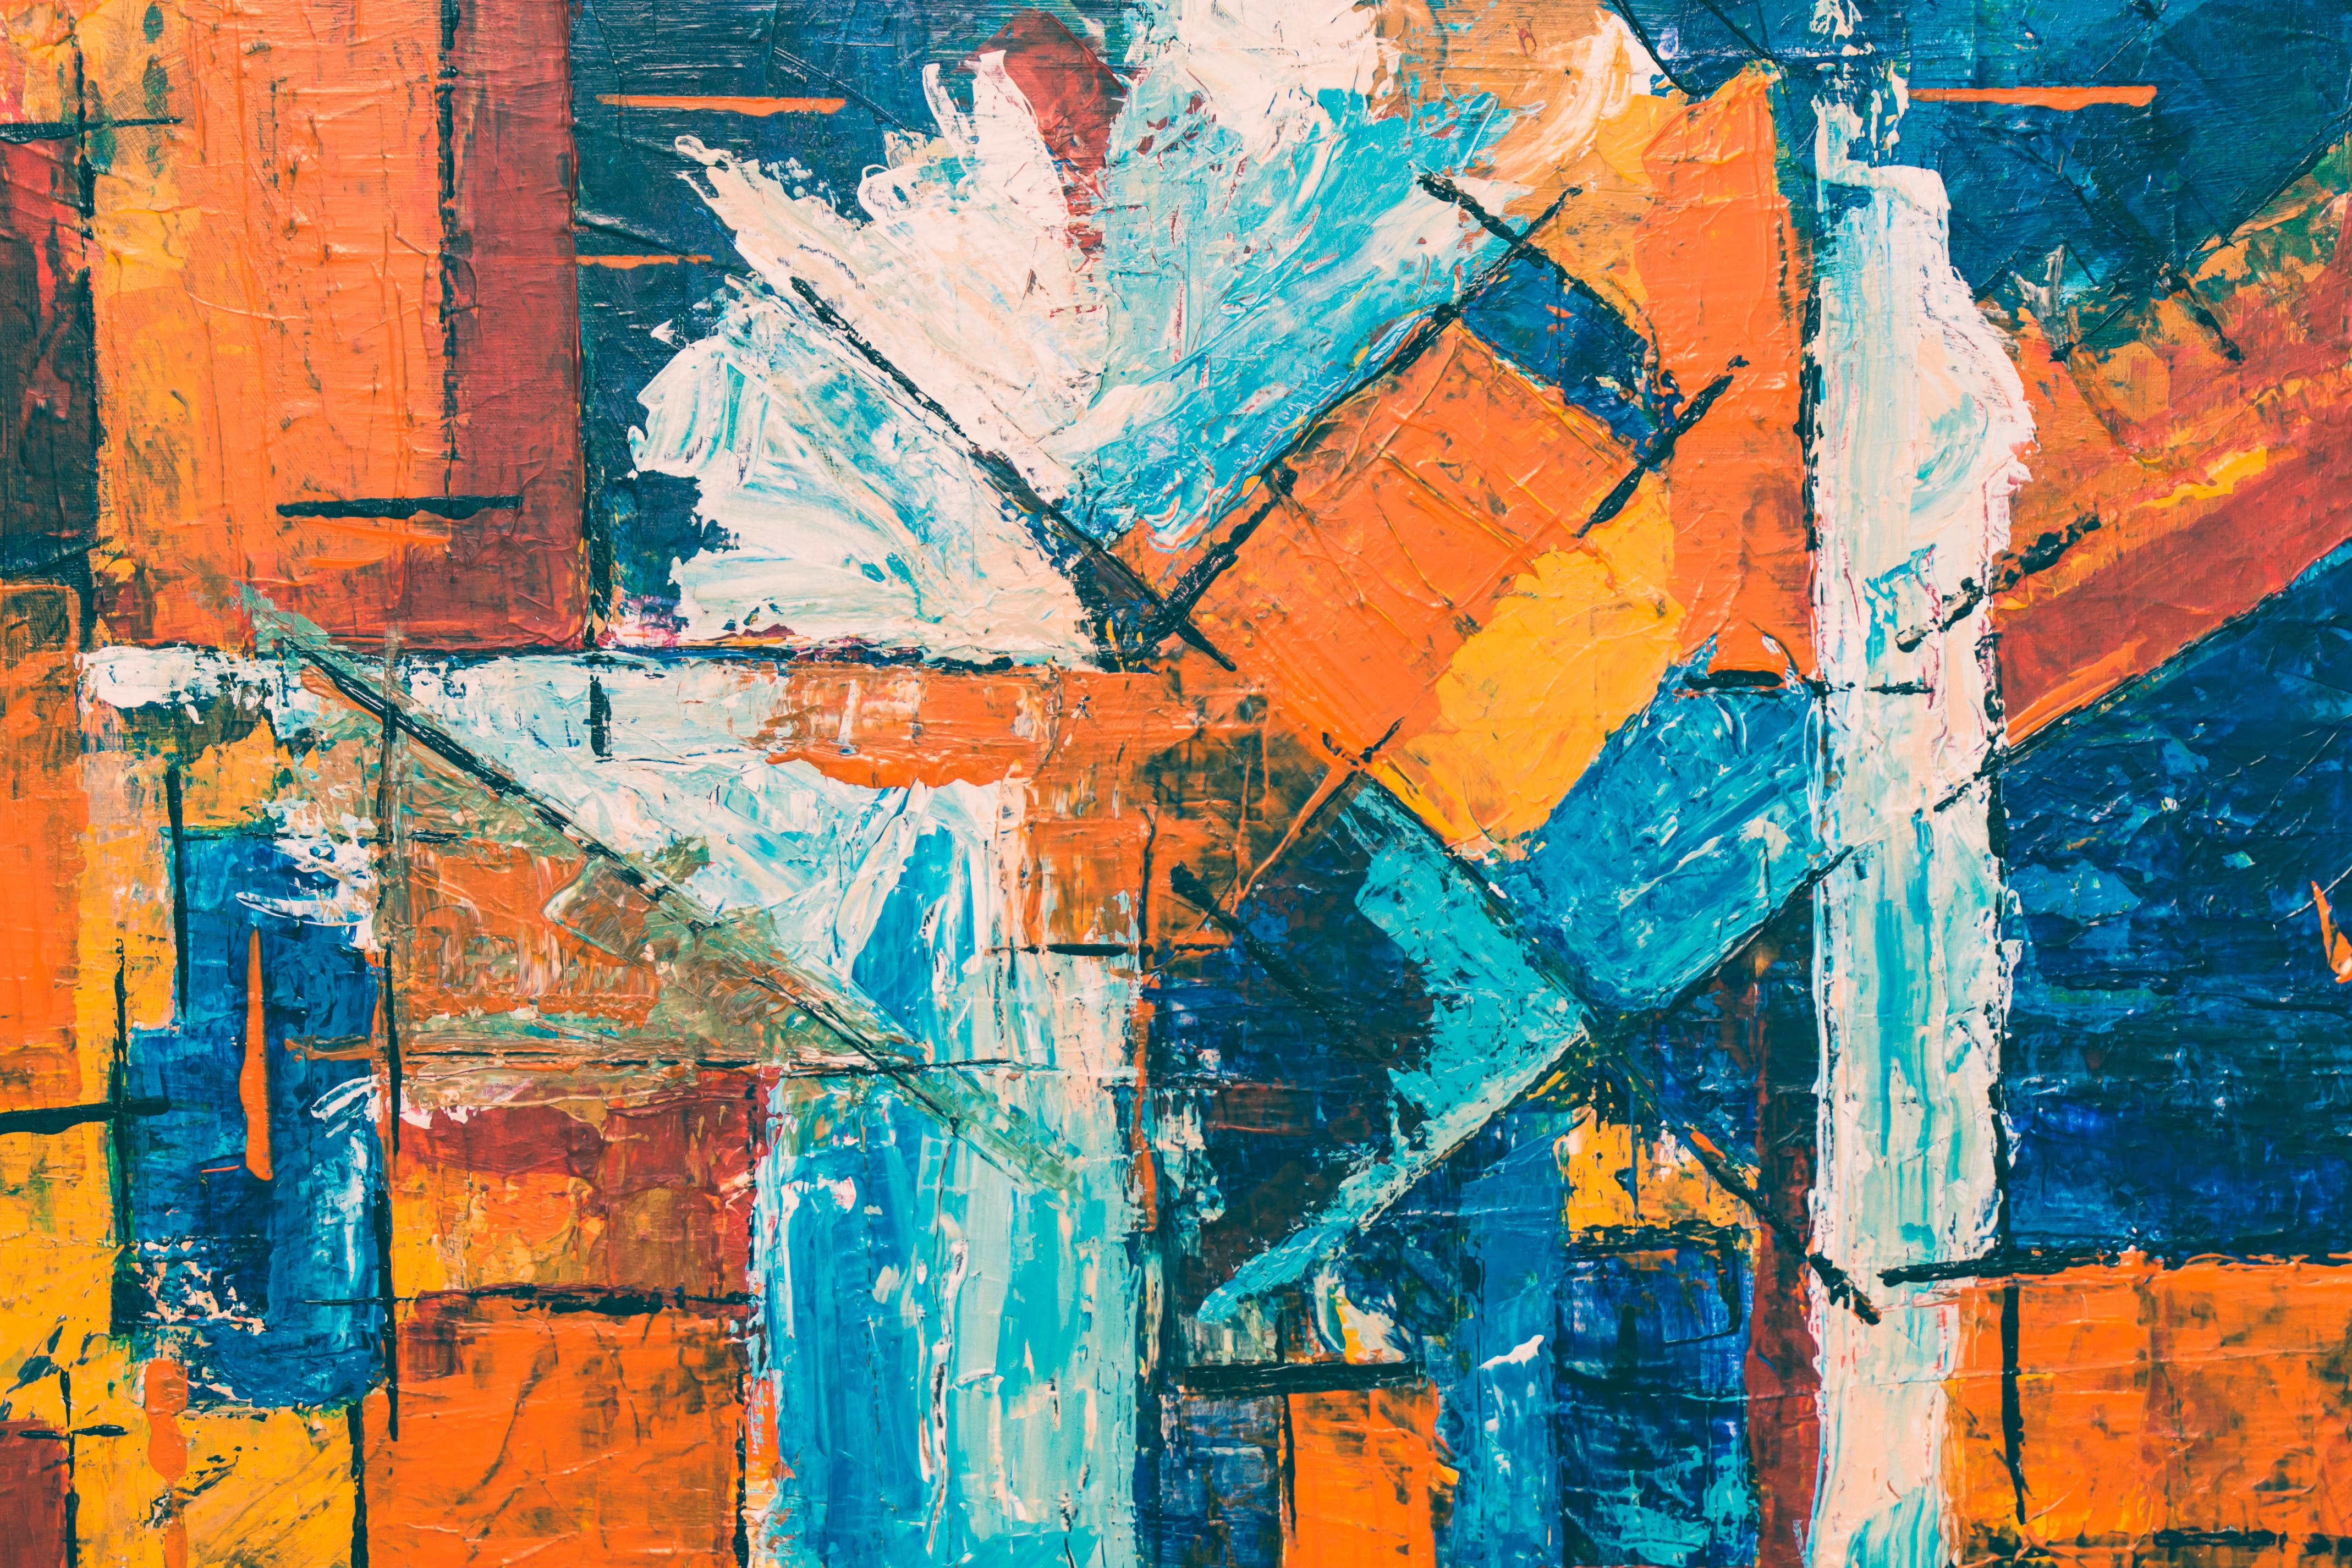 Blue, Orange, And White Abstract Painting